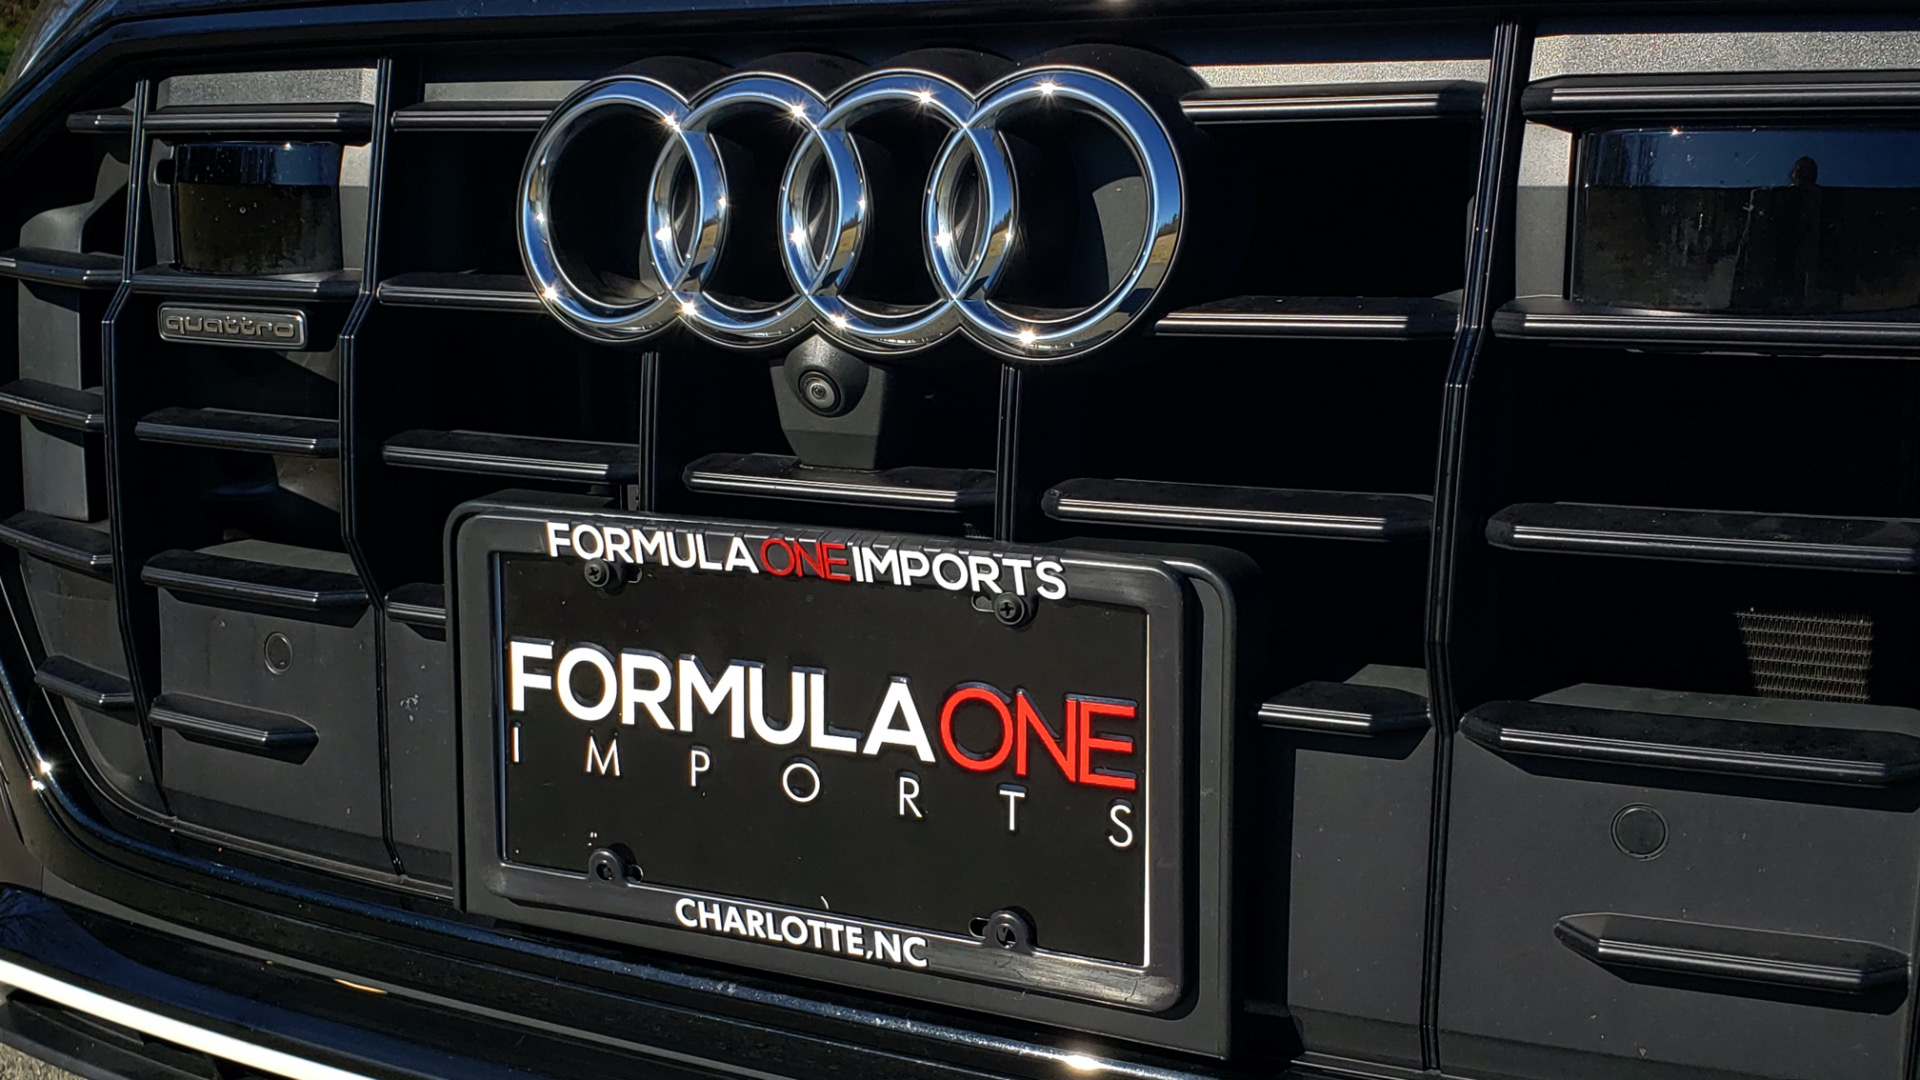 Used 2019 Audi Q8 PRESTIGE S-LINE / LUX PKG / ADAPT CHASSIS / YEAR ONE / CLD WTHR for sale Sold at Formula Imports in Charlotte NC 28227 27